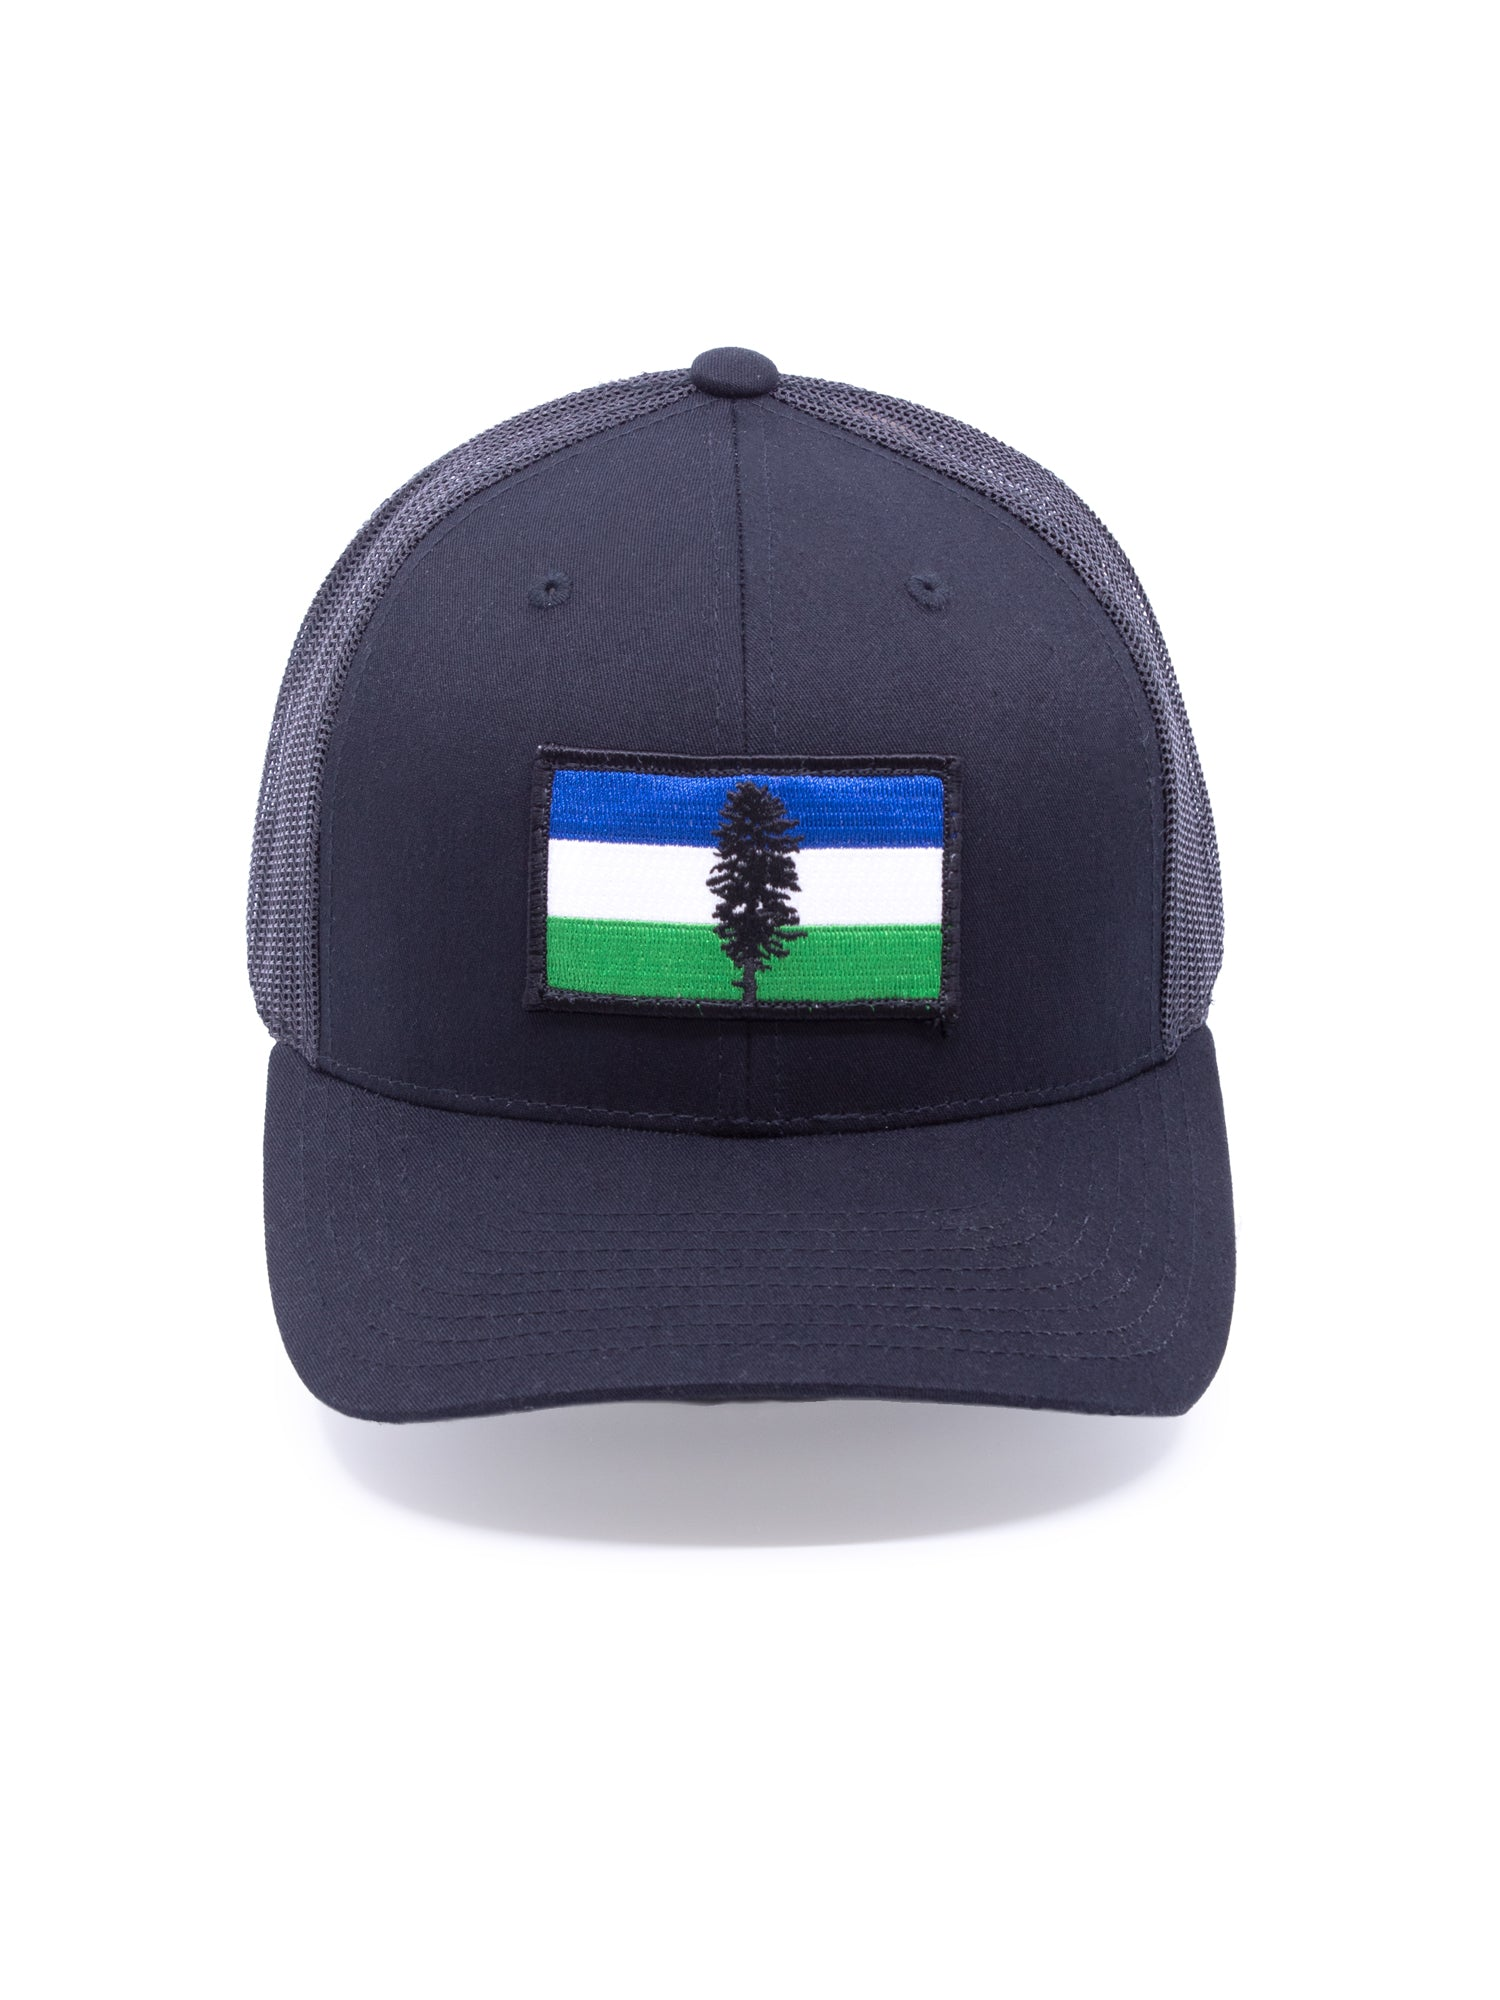 Northwest Vibes Cascadia Trucker Hat Black